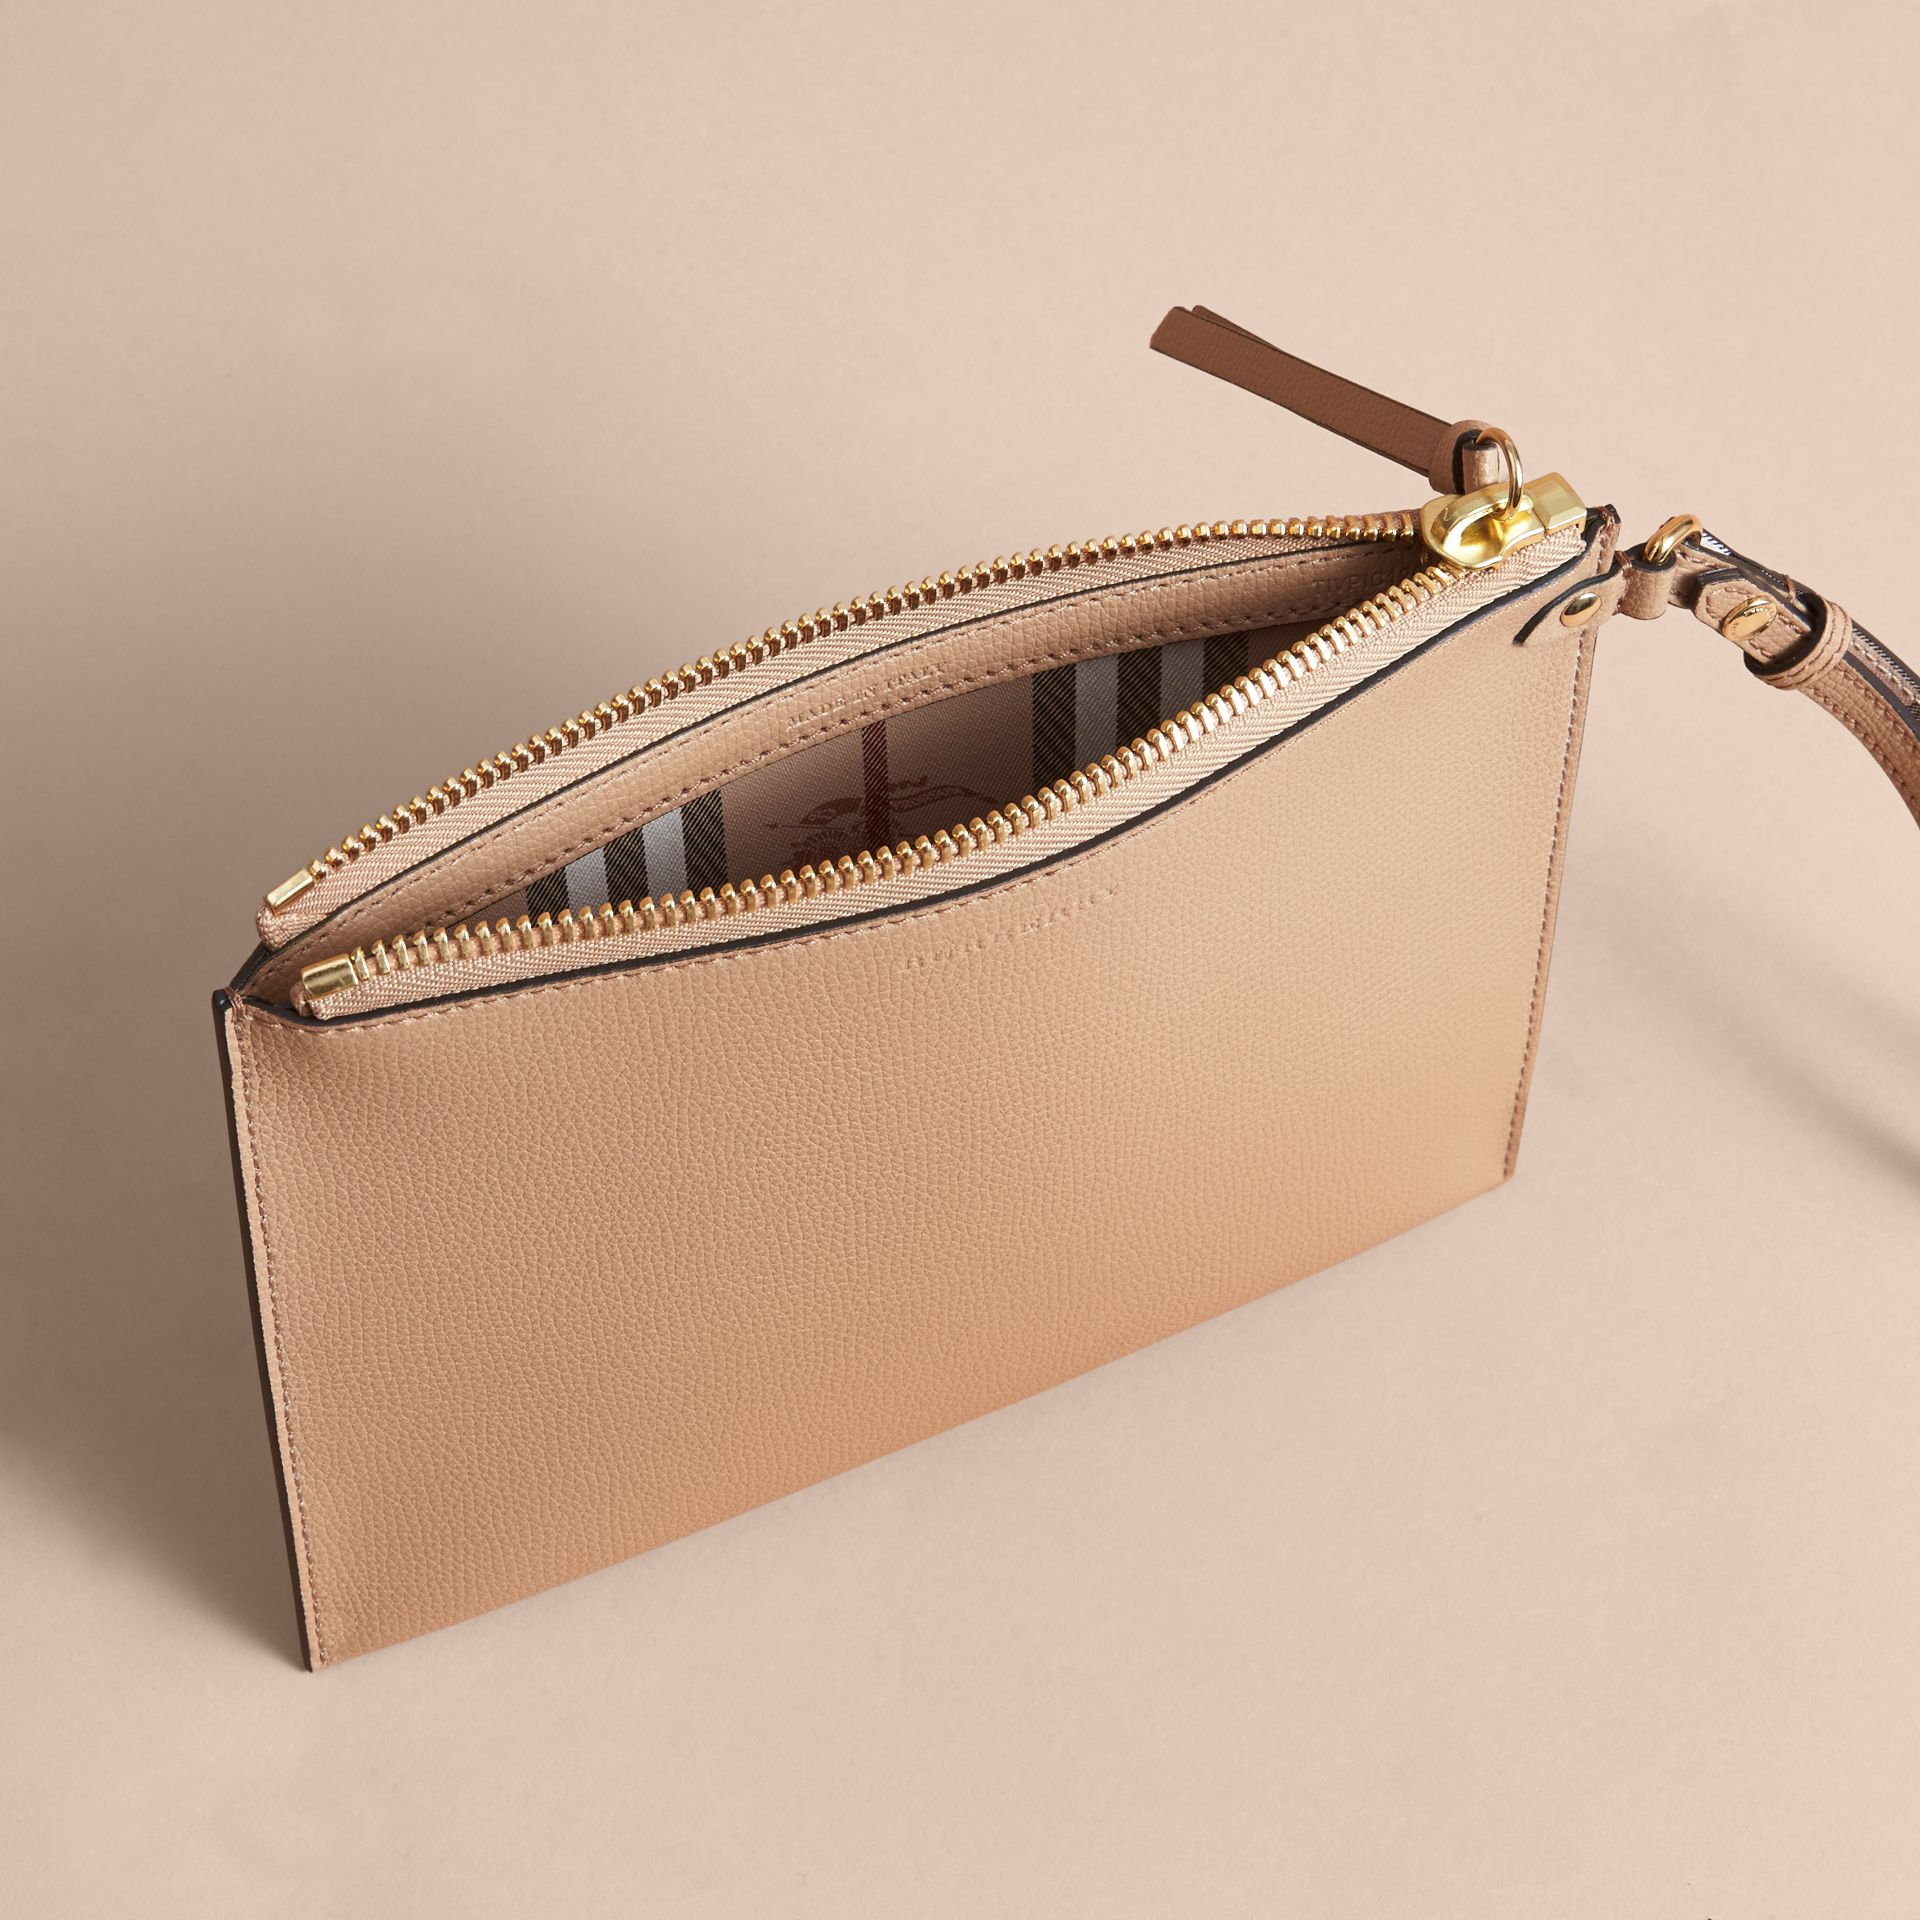 Haymarket Check and Leather Pouch in Mid Camel - Women | Burberry Singapore - gallery image 5